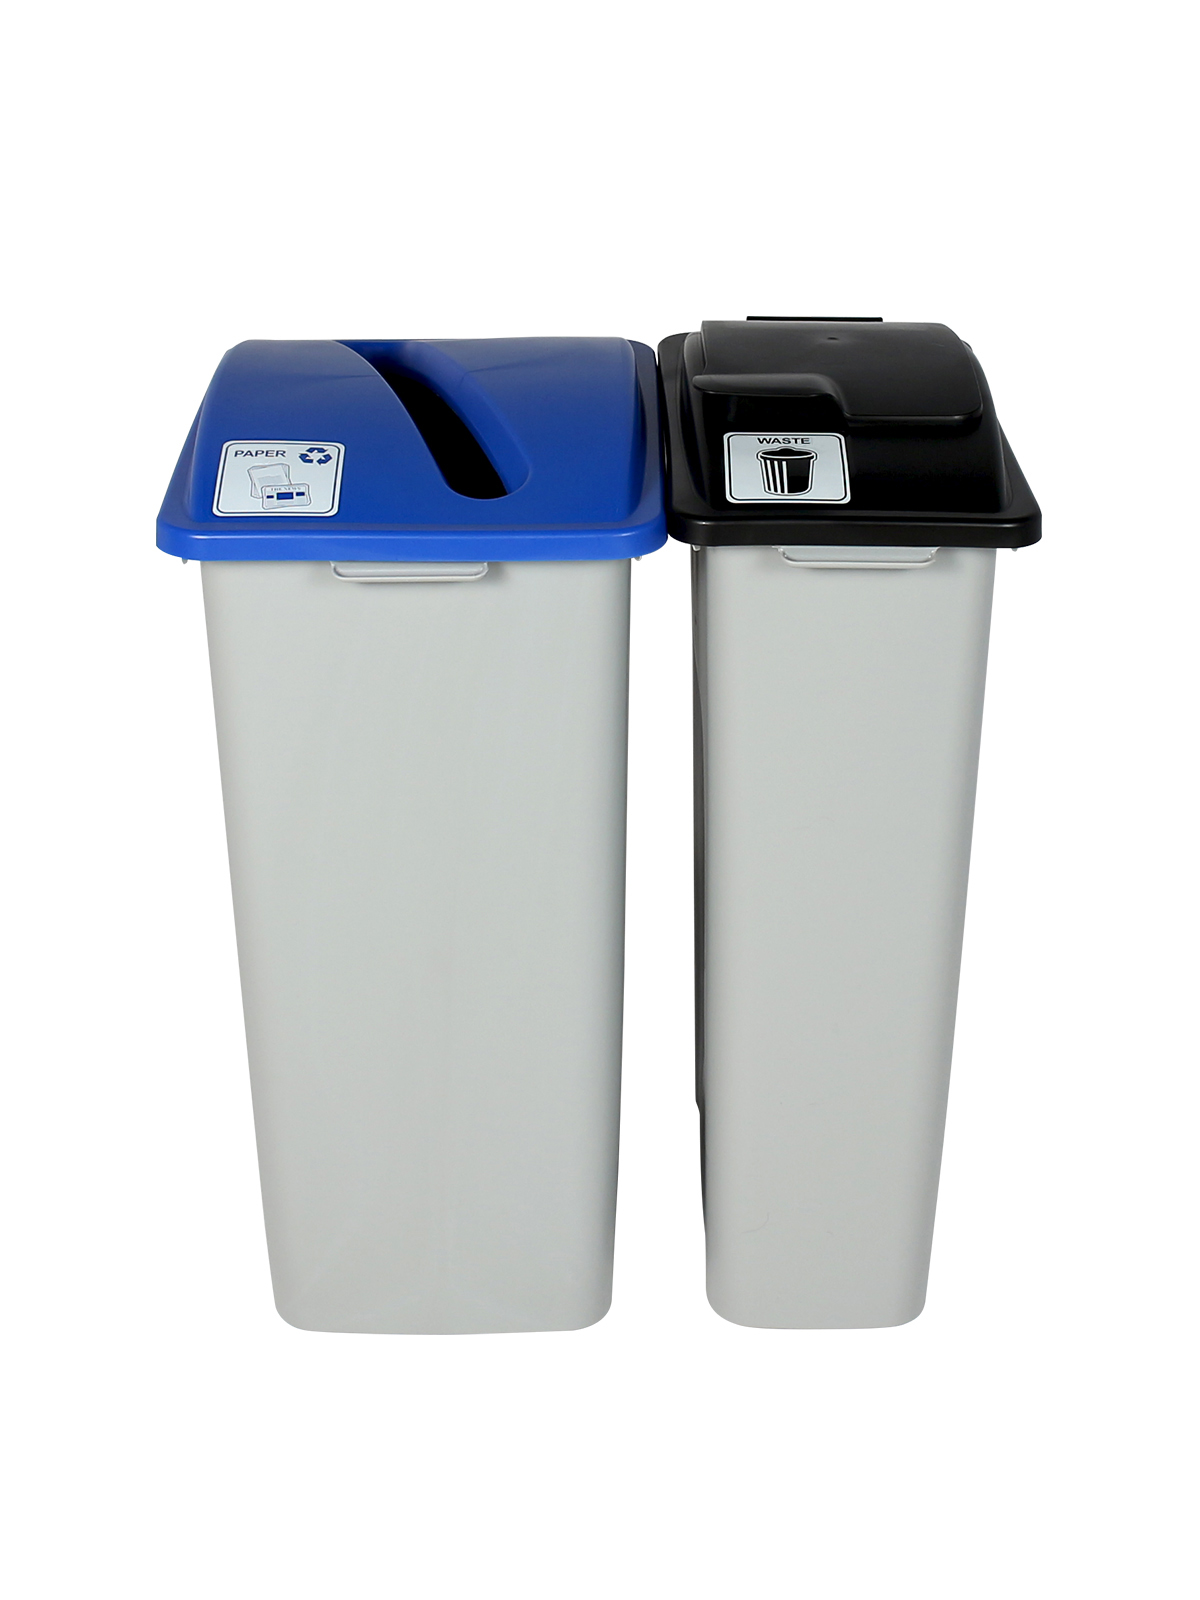 WASTE WATCHER XL - Double - Paper-Waste - Slot-Solid Lift - Grey-Blue-Black